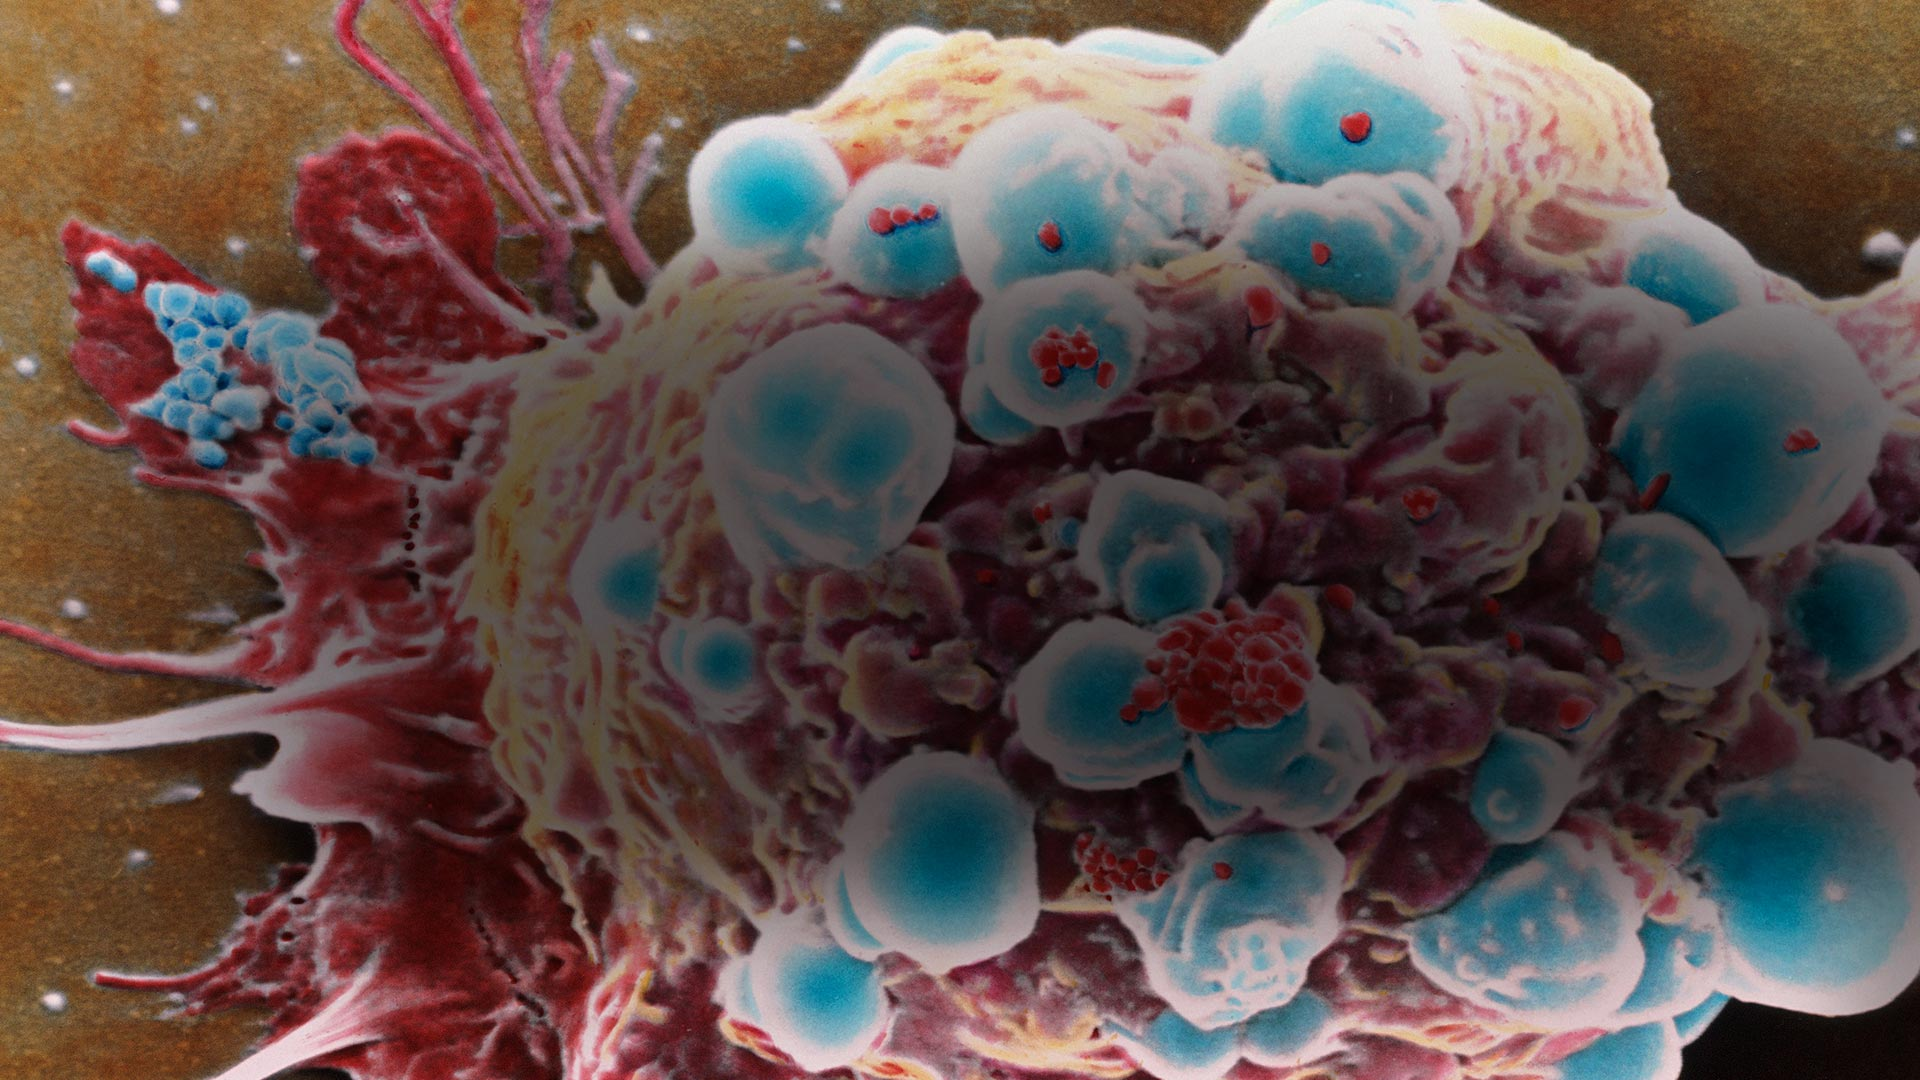 9 Things You May Not Know About Cancer